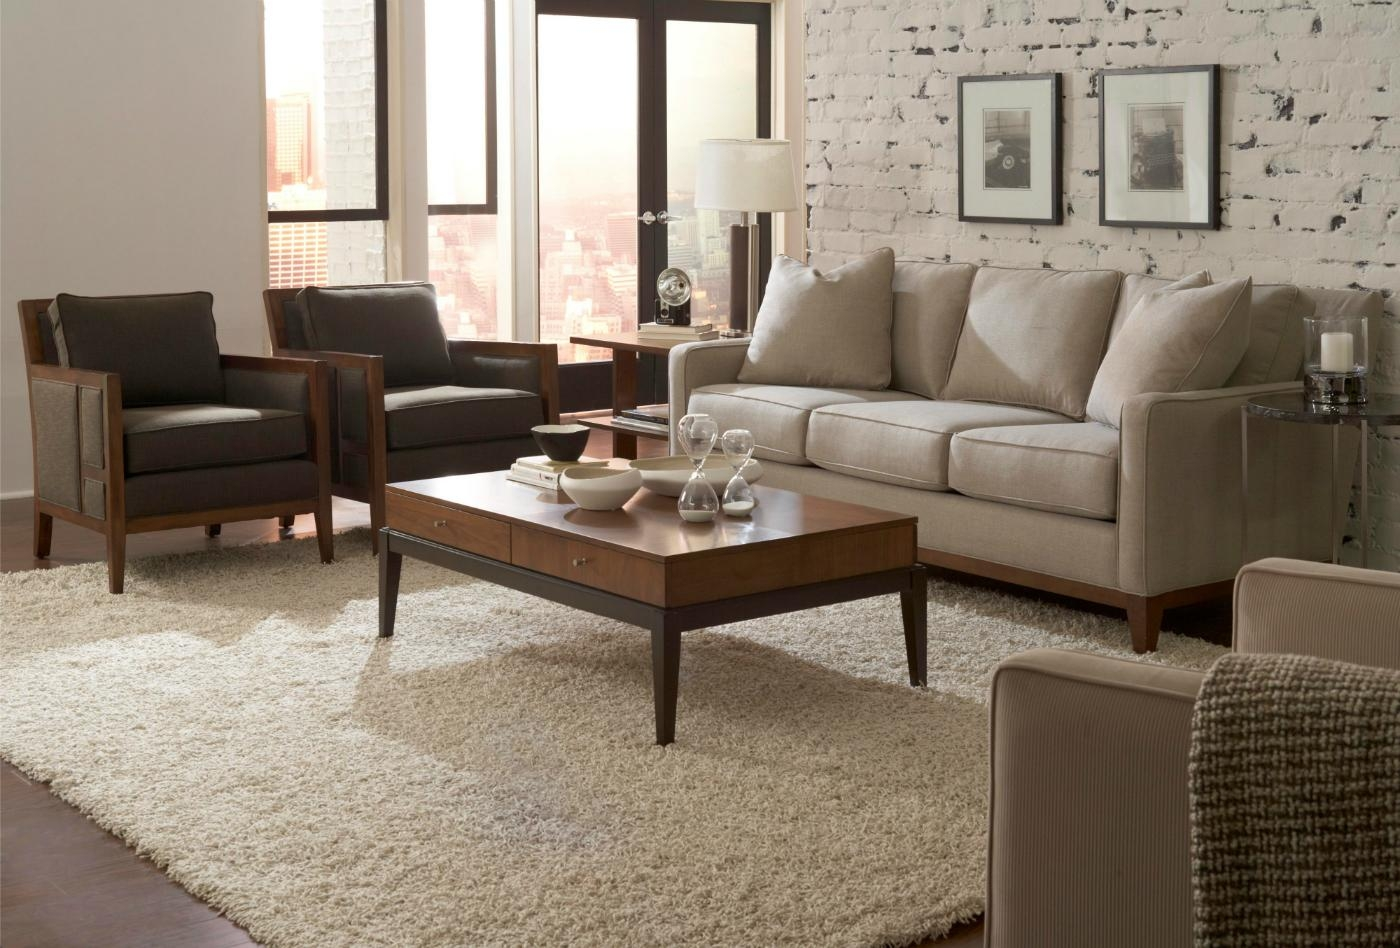 Quinn Living Room Sofa And Chairs – Chambers Furniture With Living Room Sofas And Chairs (Image 15 of 20)